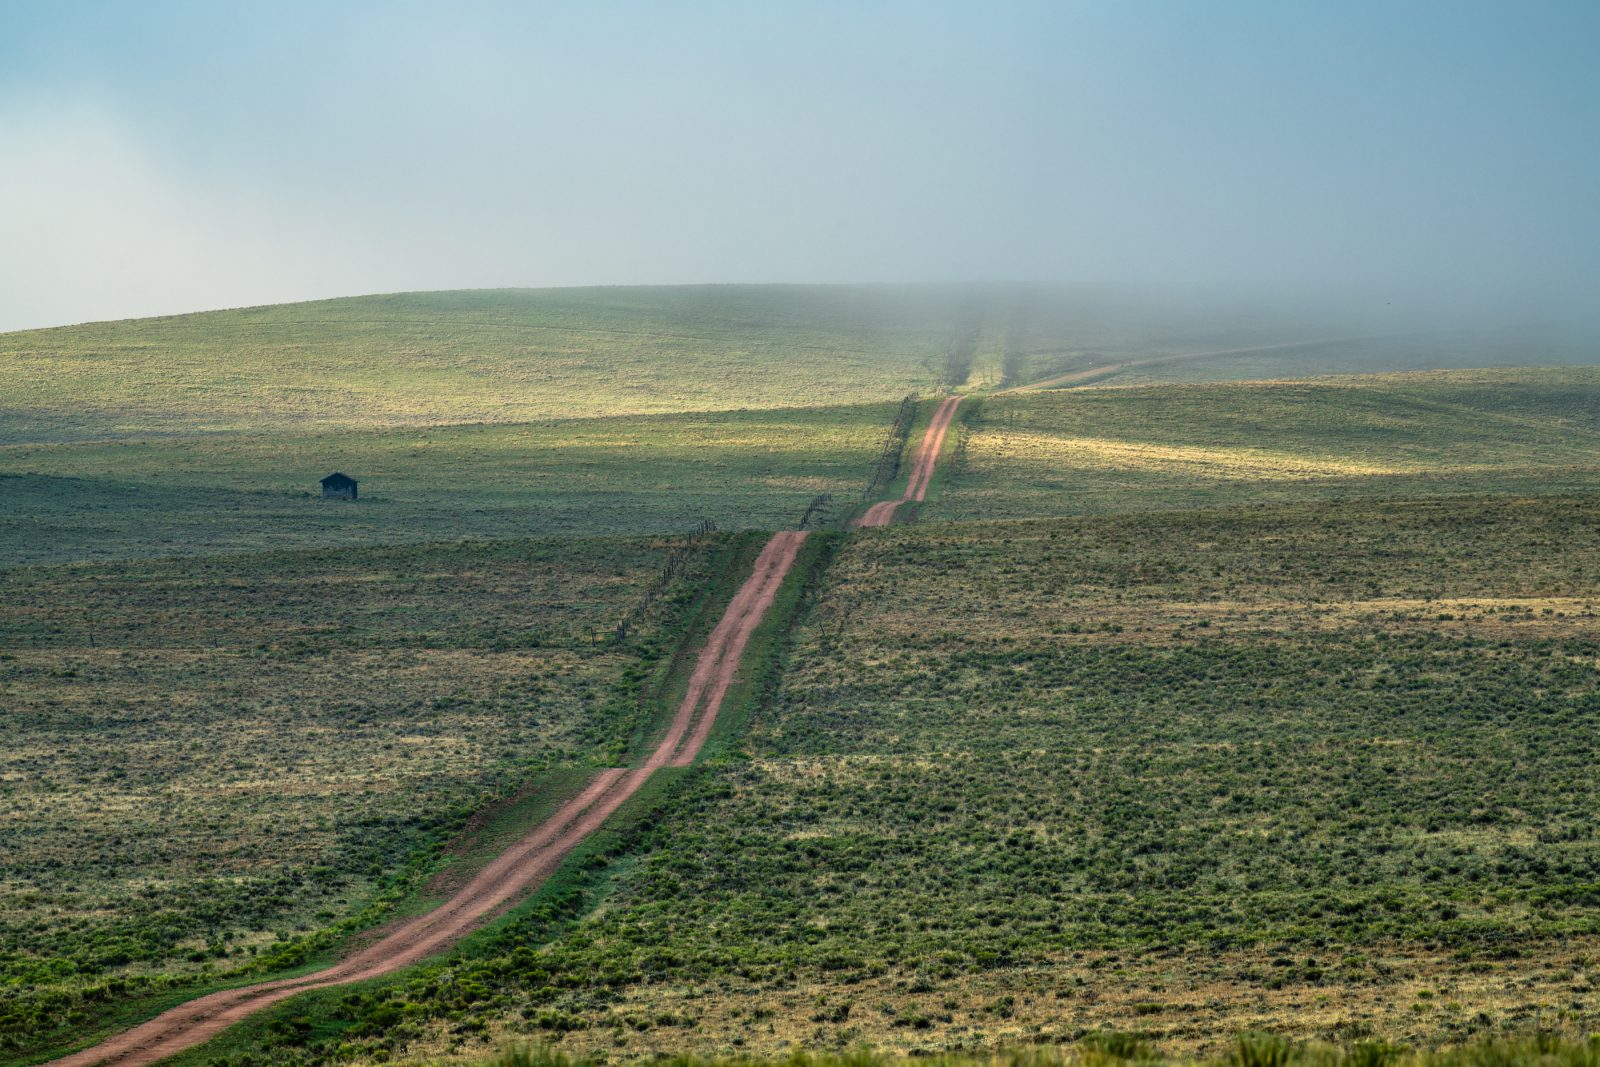 Red Dirt Road to Nowhere